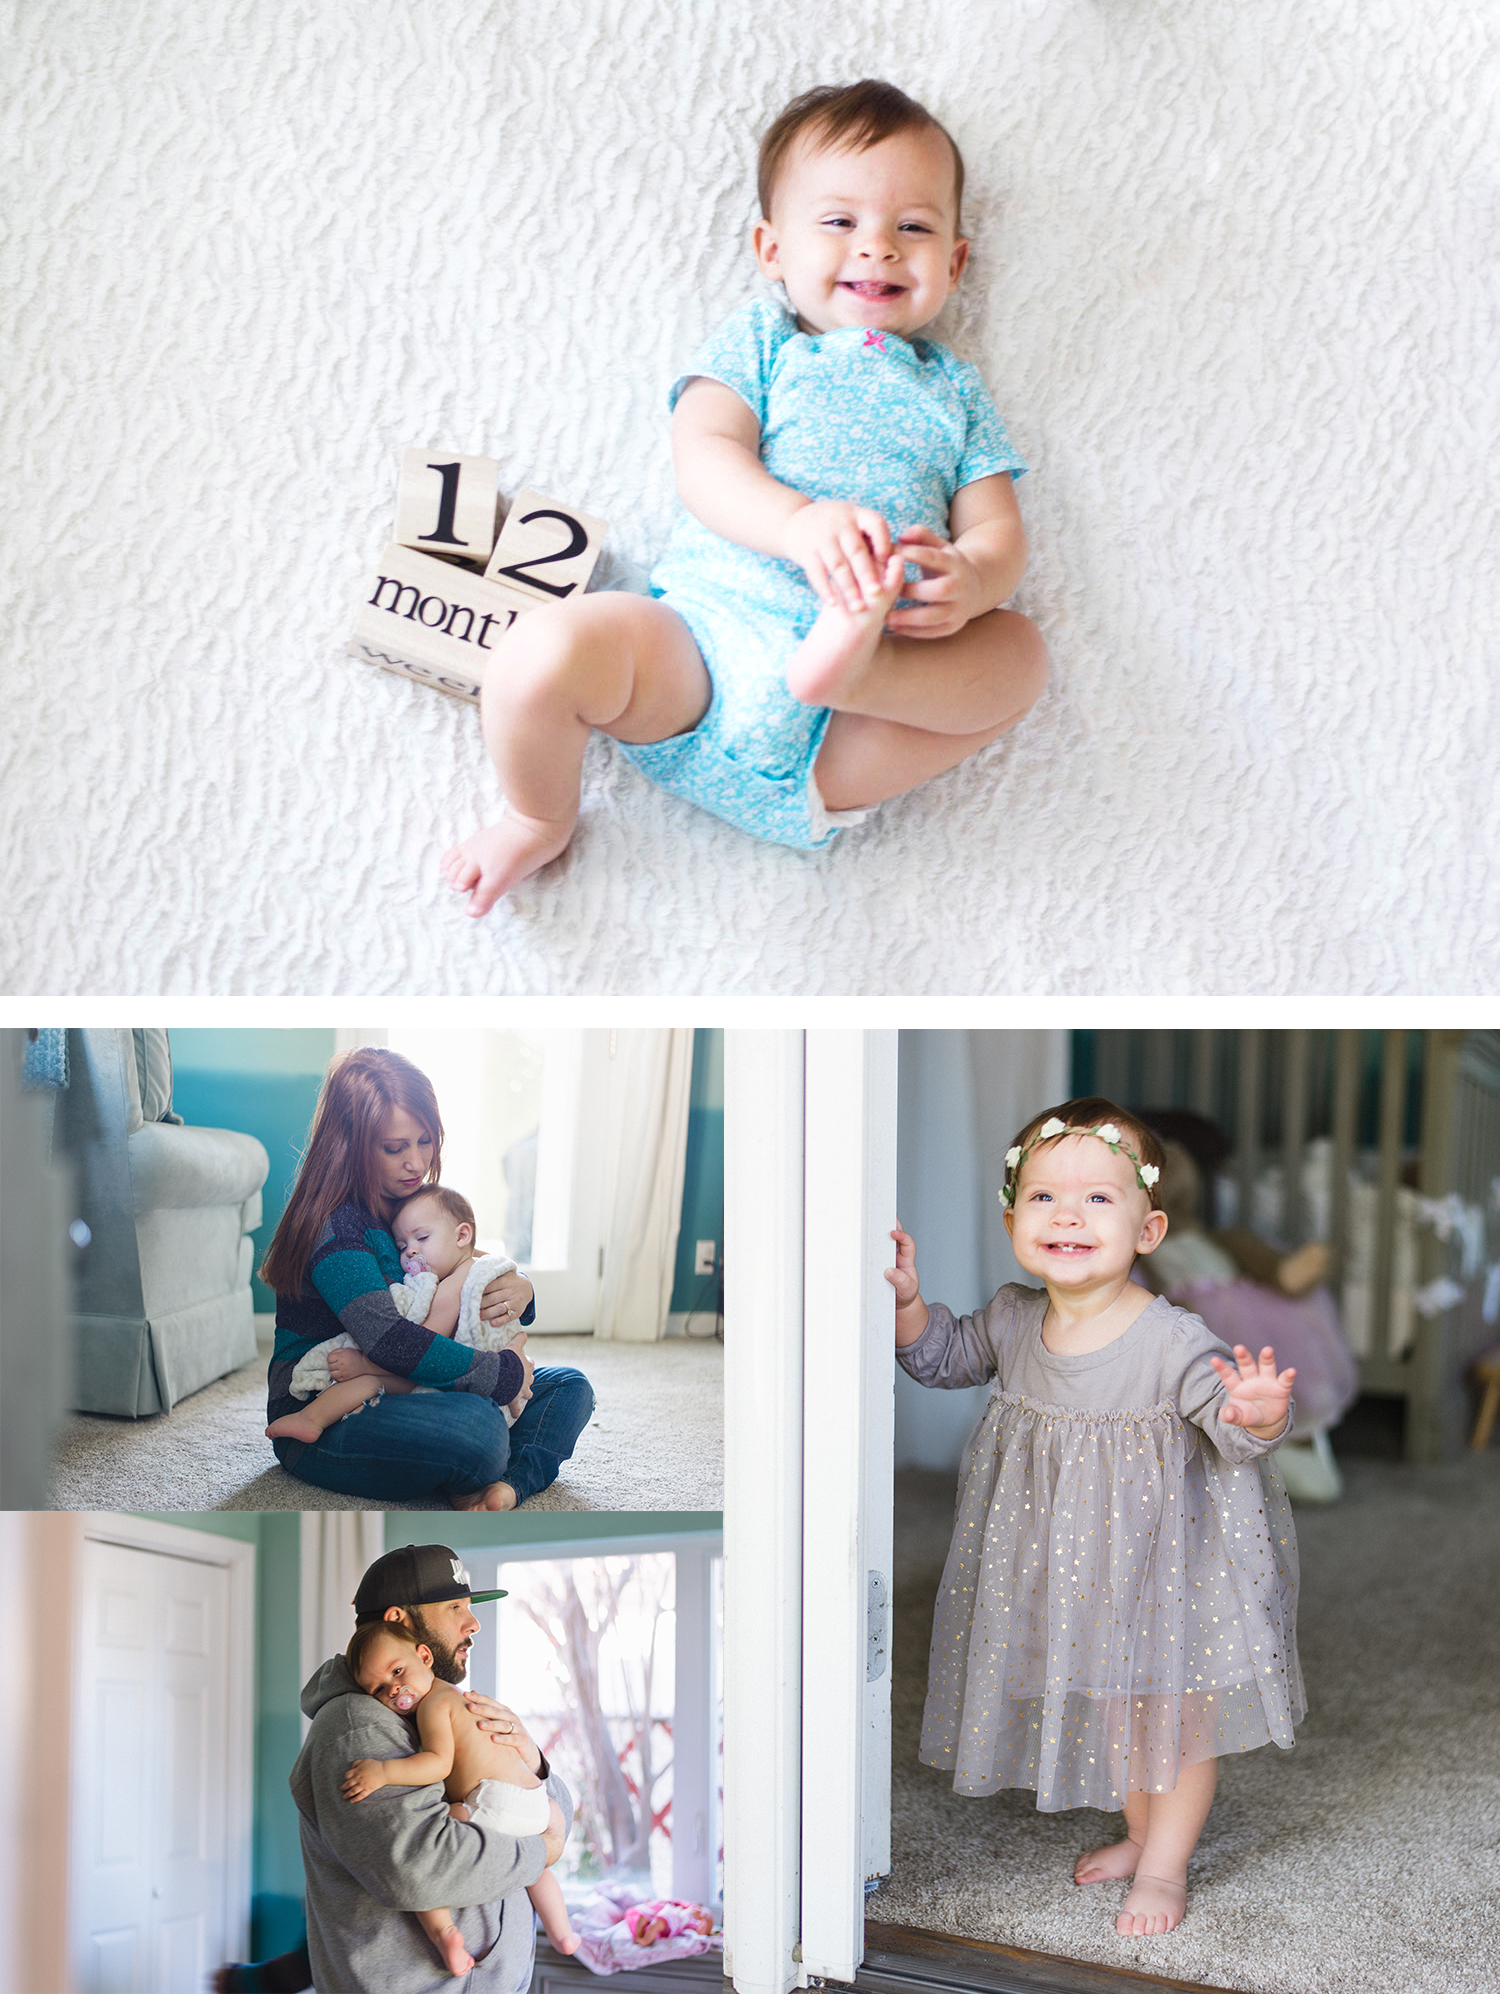 los-angeles-newborn-photographer-baby-photos-12 copy.jpg